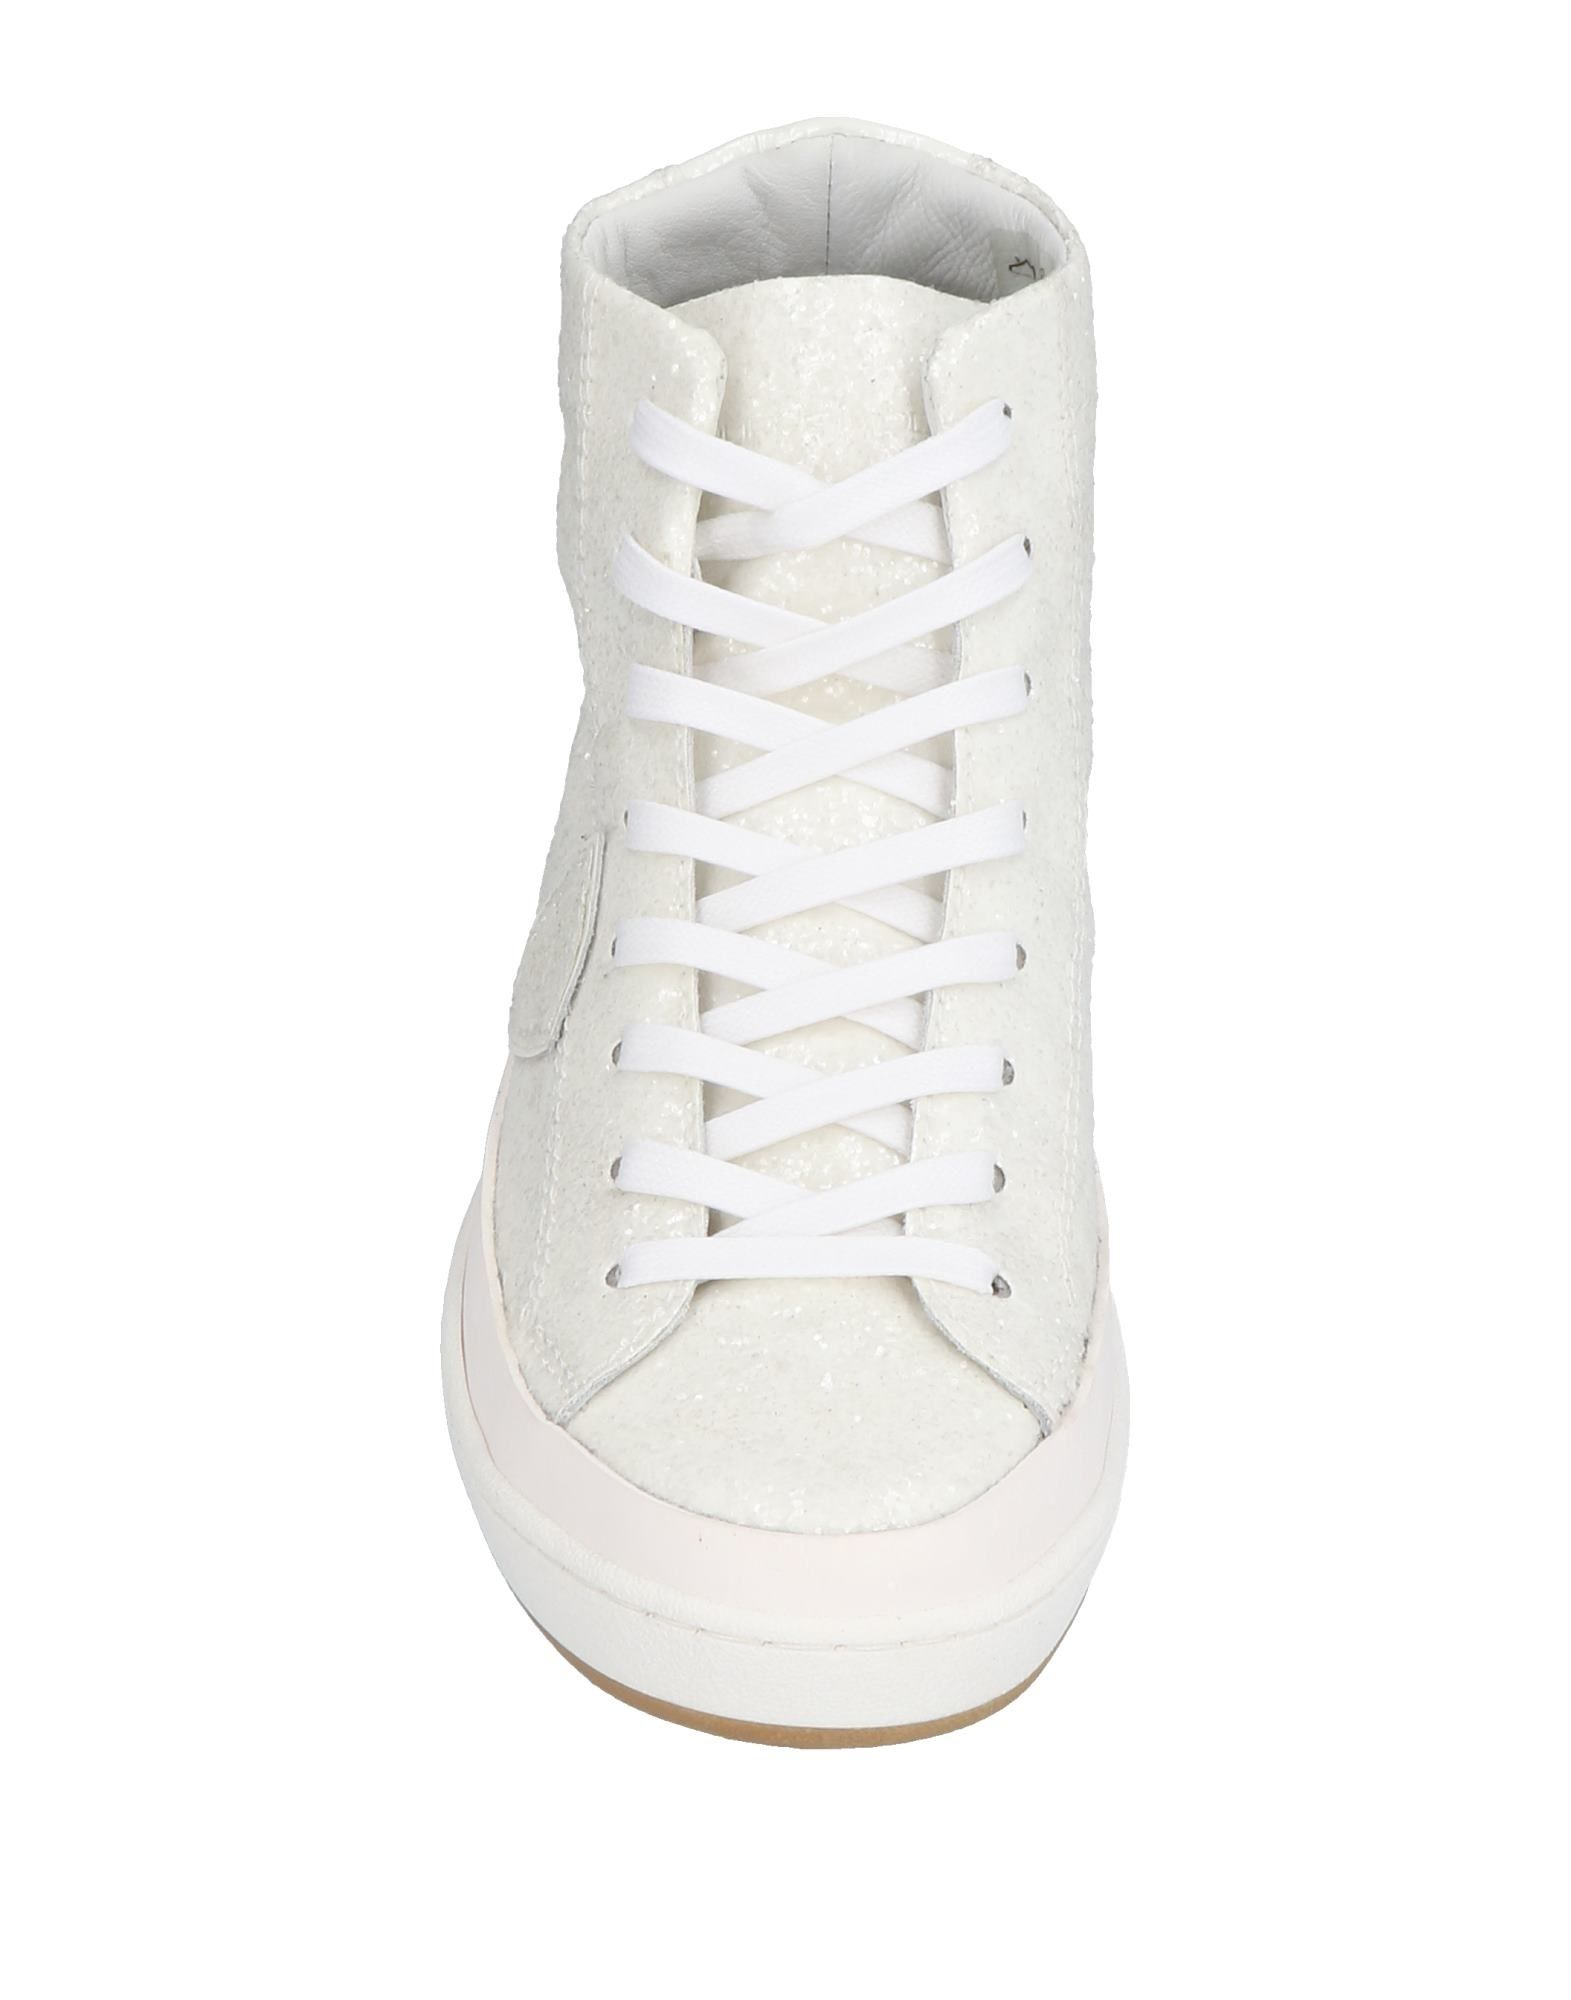 Philippe Model Sneakers strapazierfähige Damen  11478419TQGut aussehende strapazierfähige Sneakers Schuhe 77e0b7